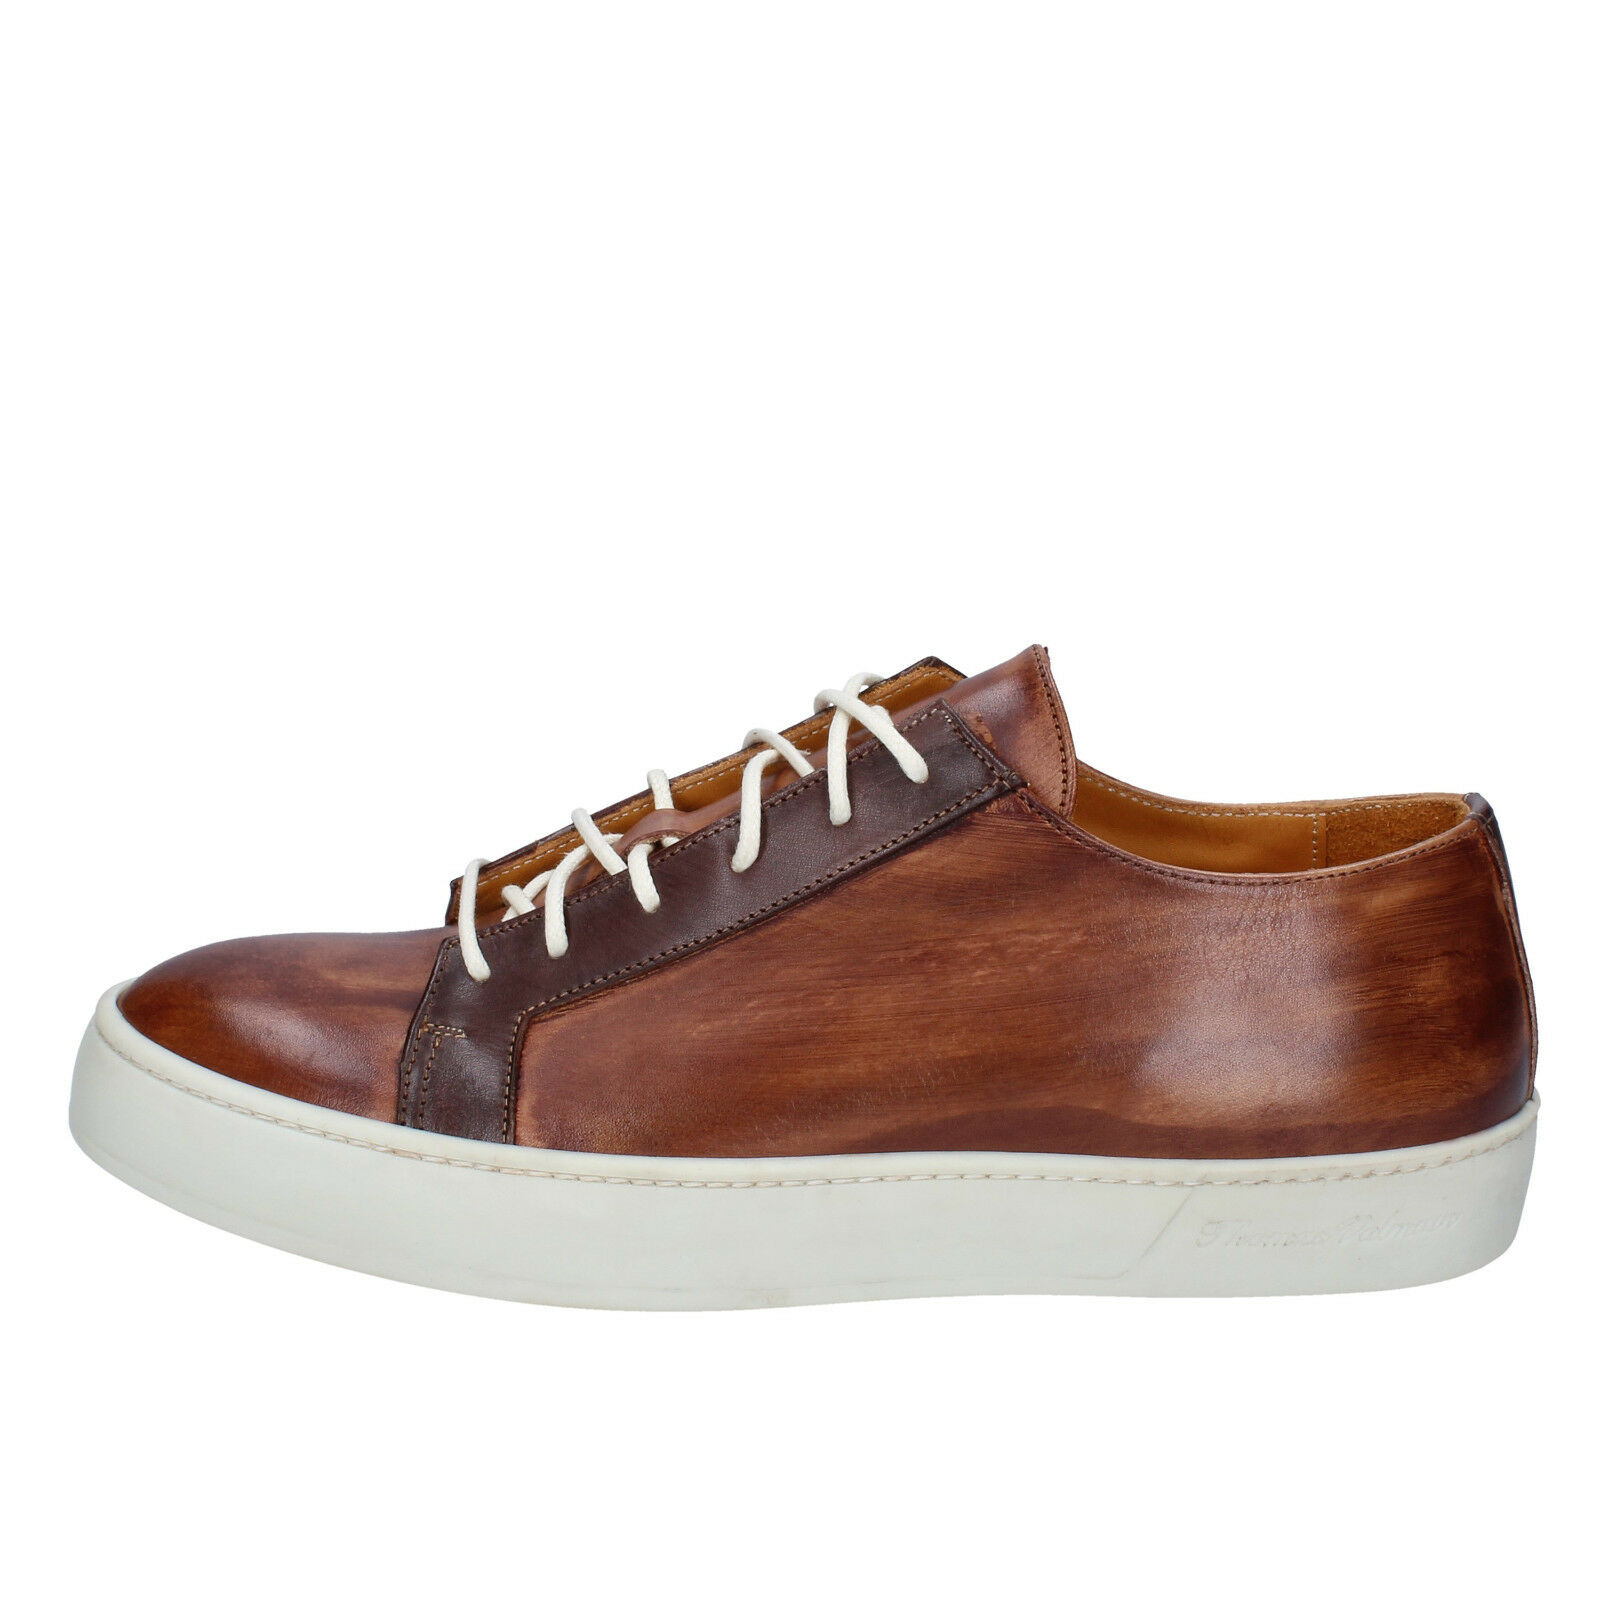 Men's shoes THOMAS VALMAIN 8 () sneakers brown leather AB805-41